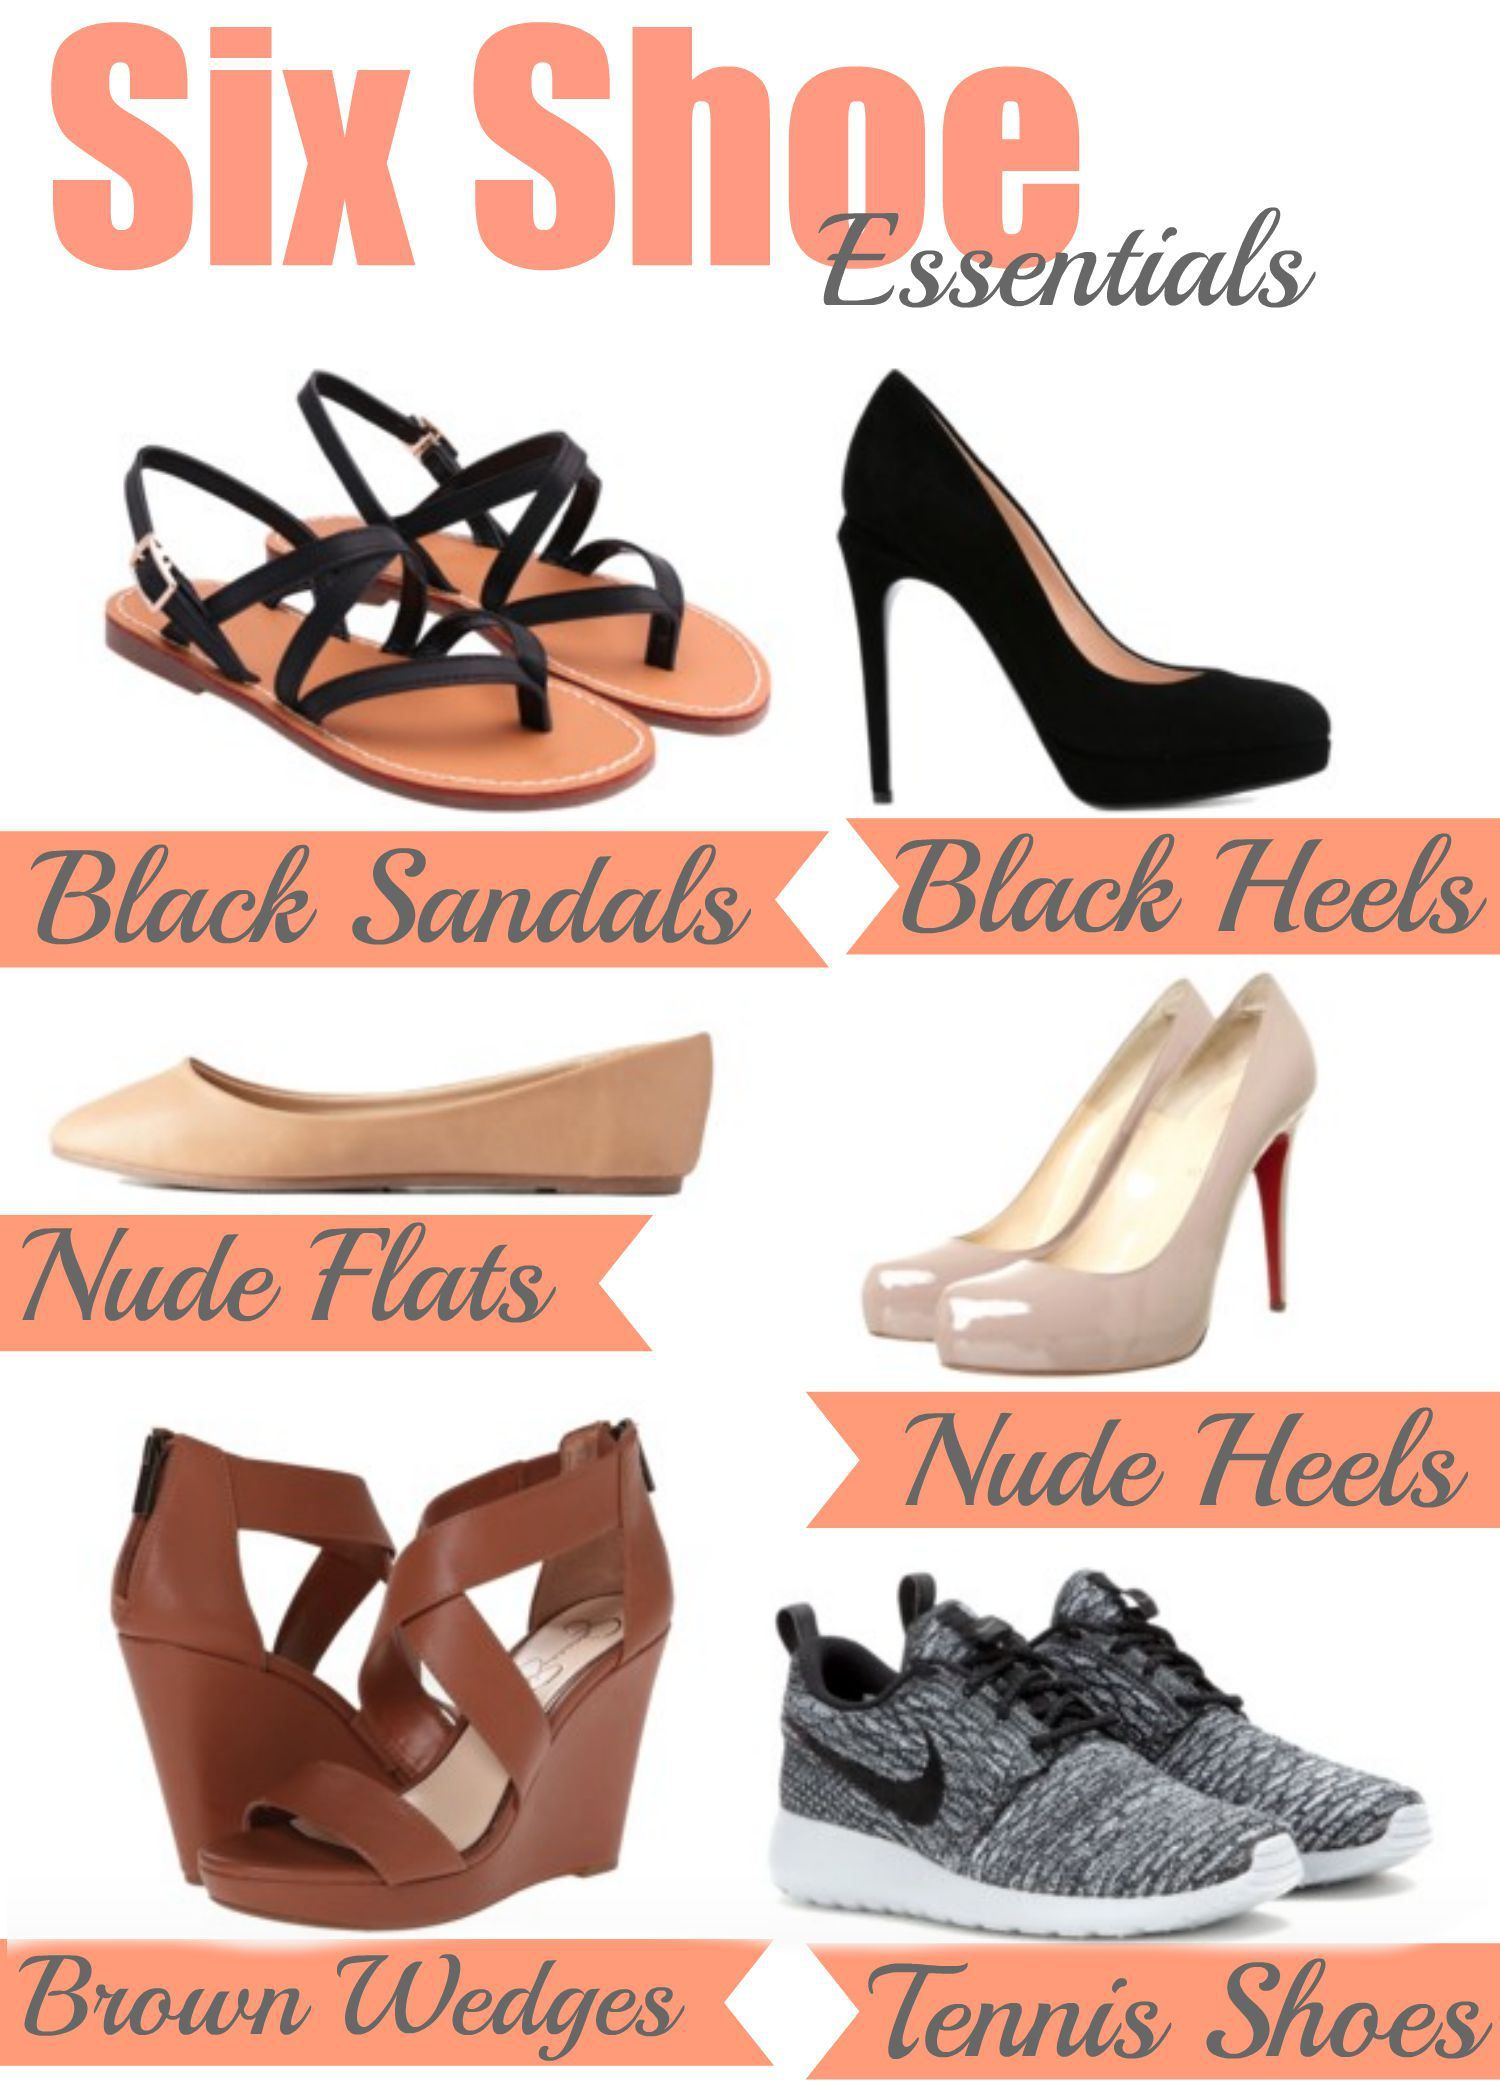 3db45a6a072 6 Shoes Ever Girl Should Have  The basics to get you through any event  you ll ever go to.